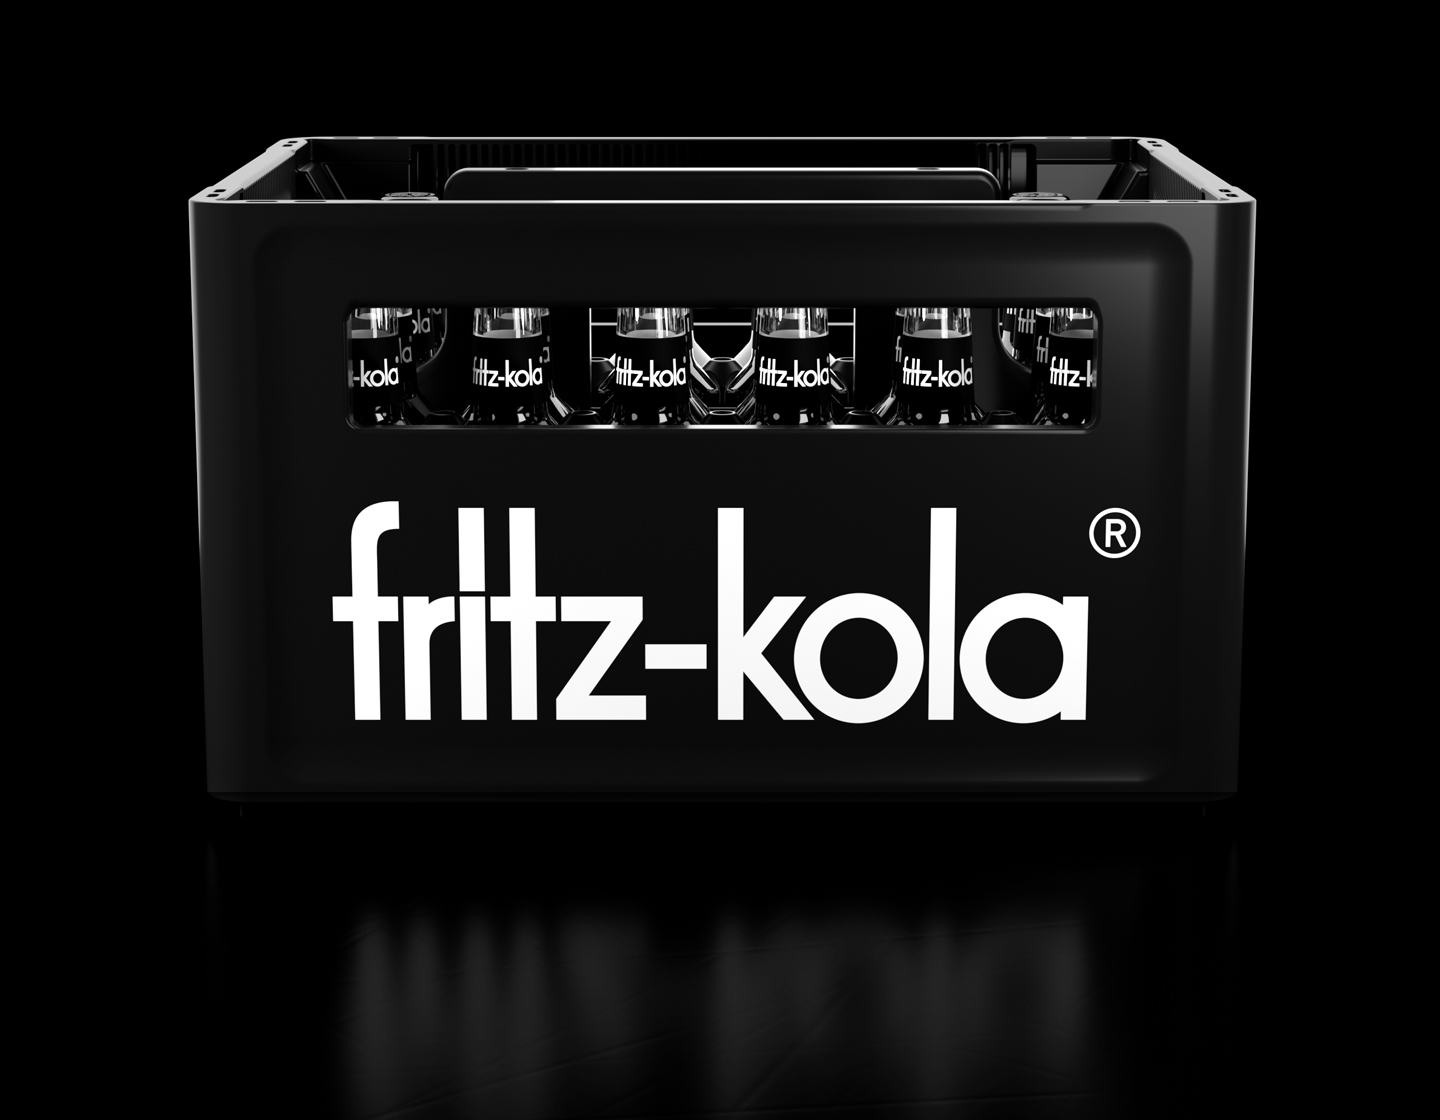 fritz-kola corporate design werksdesign flasche relief